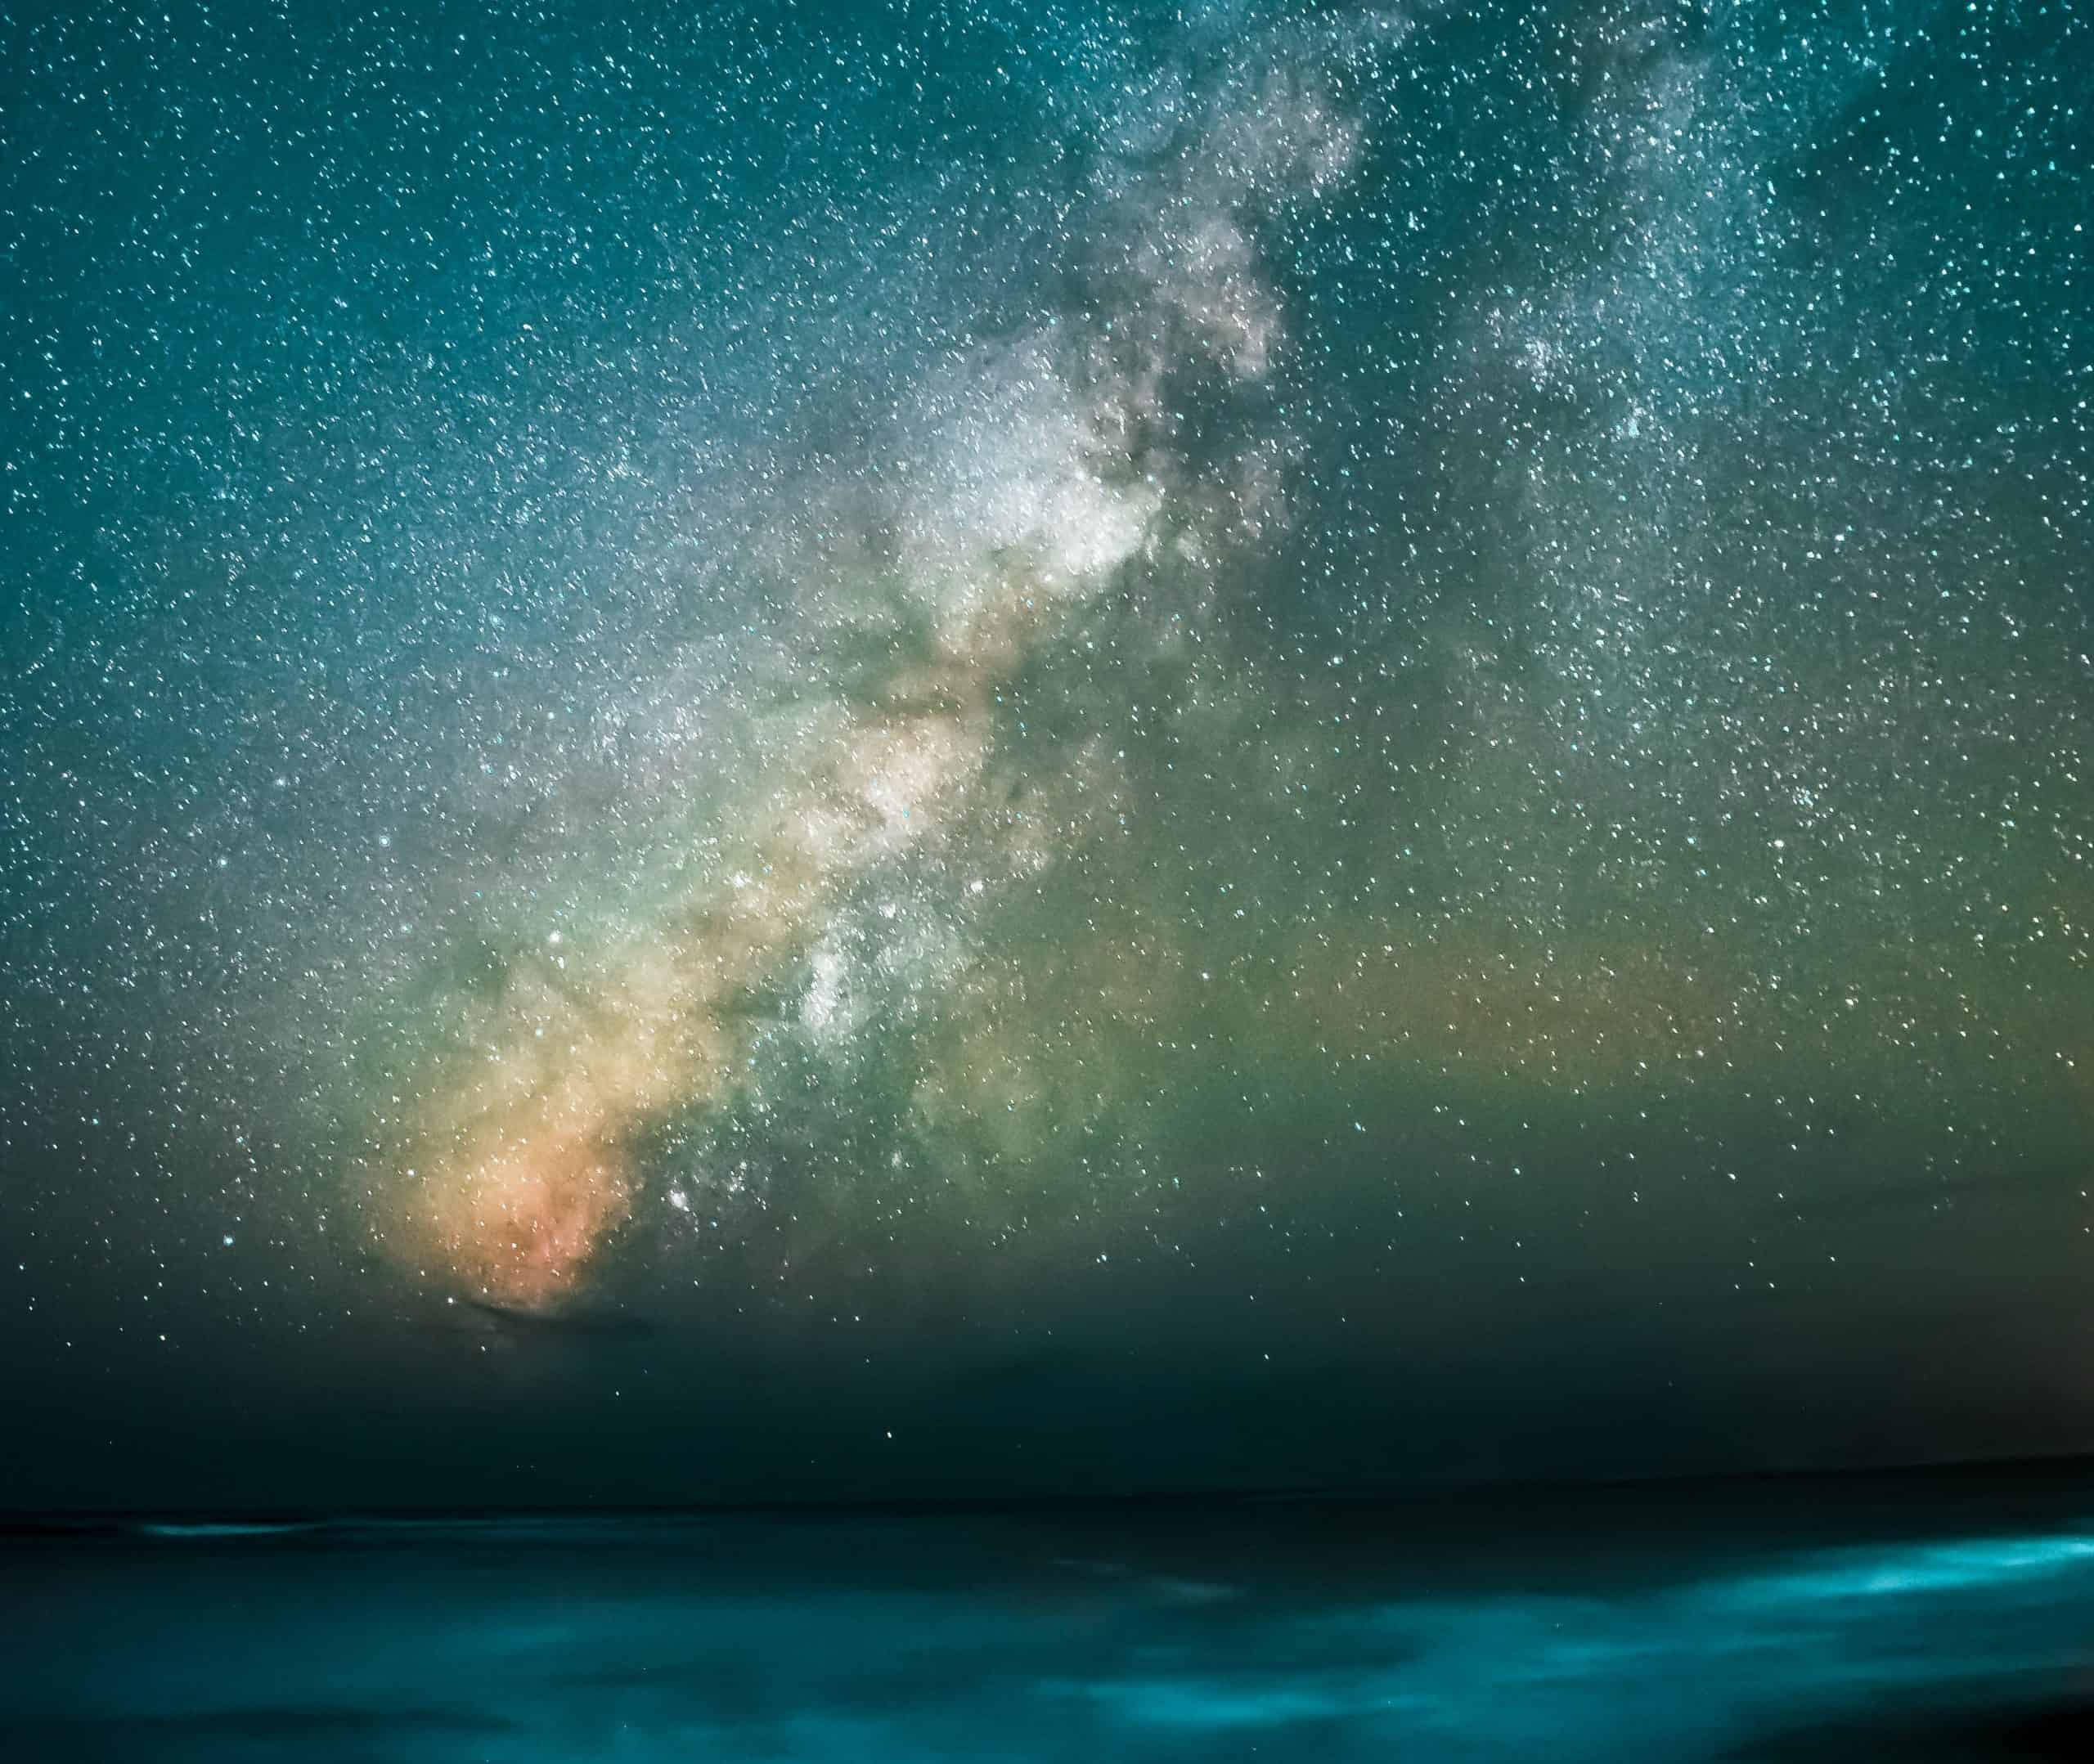 Astrophotography Tips: Set ISO to Minimize Noise